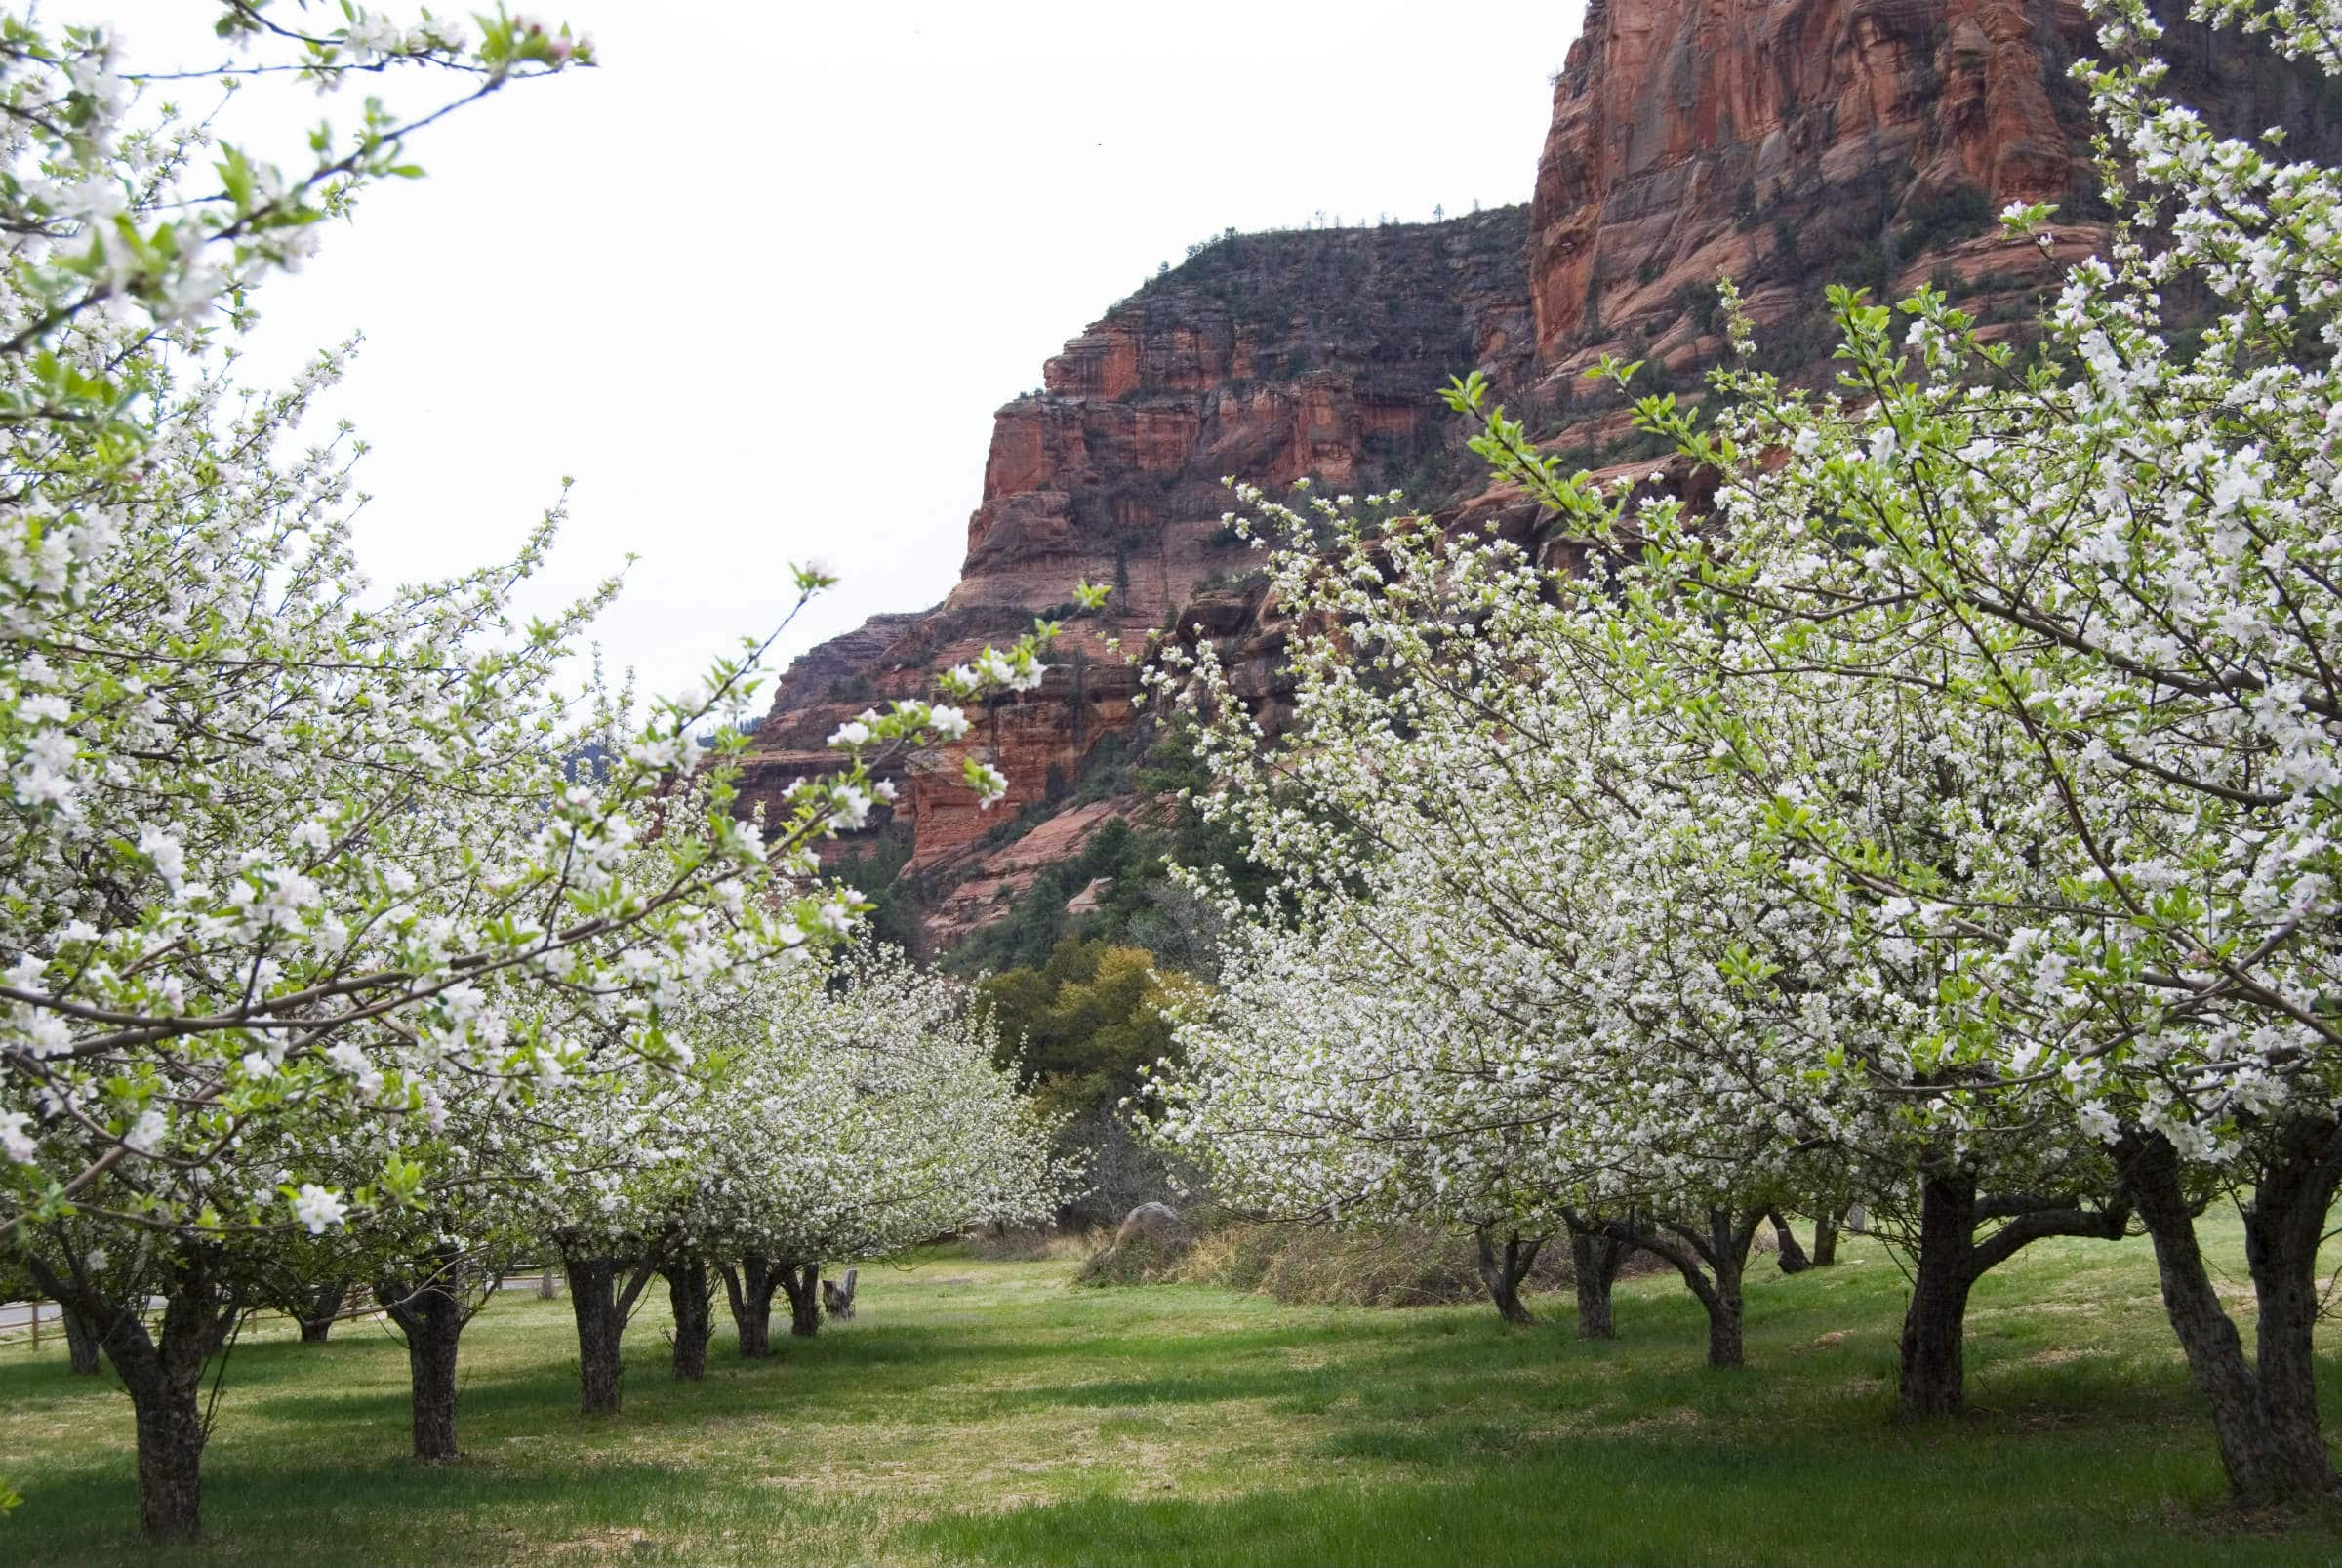 Two rows of trees dense with white blossoms sit in a field of grass, with the red mountains of Sedona in the background.